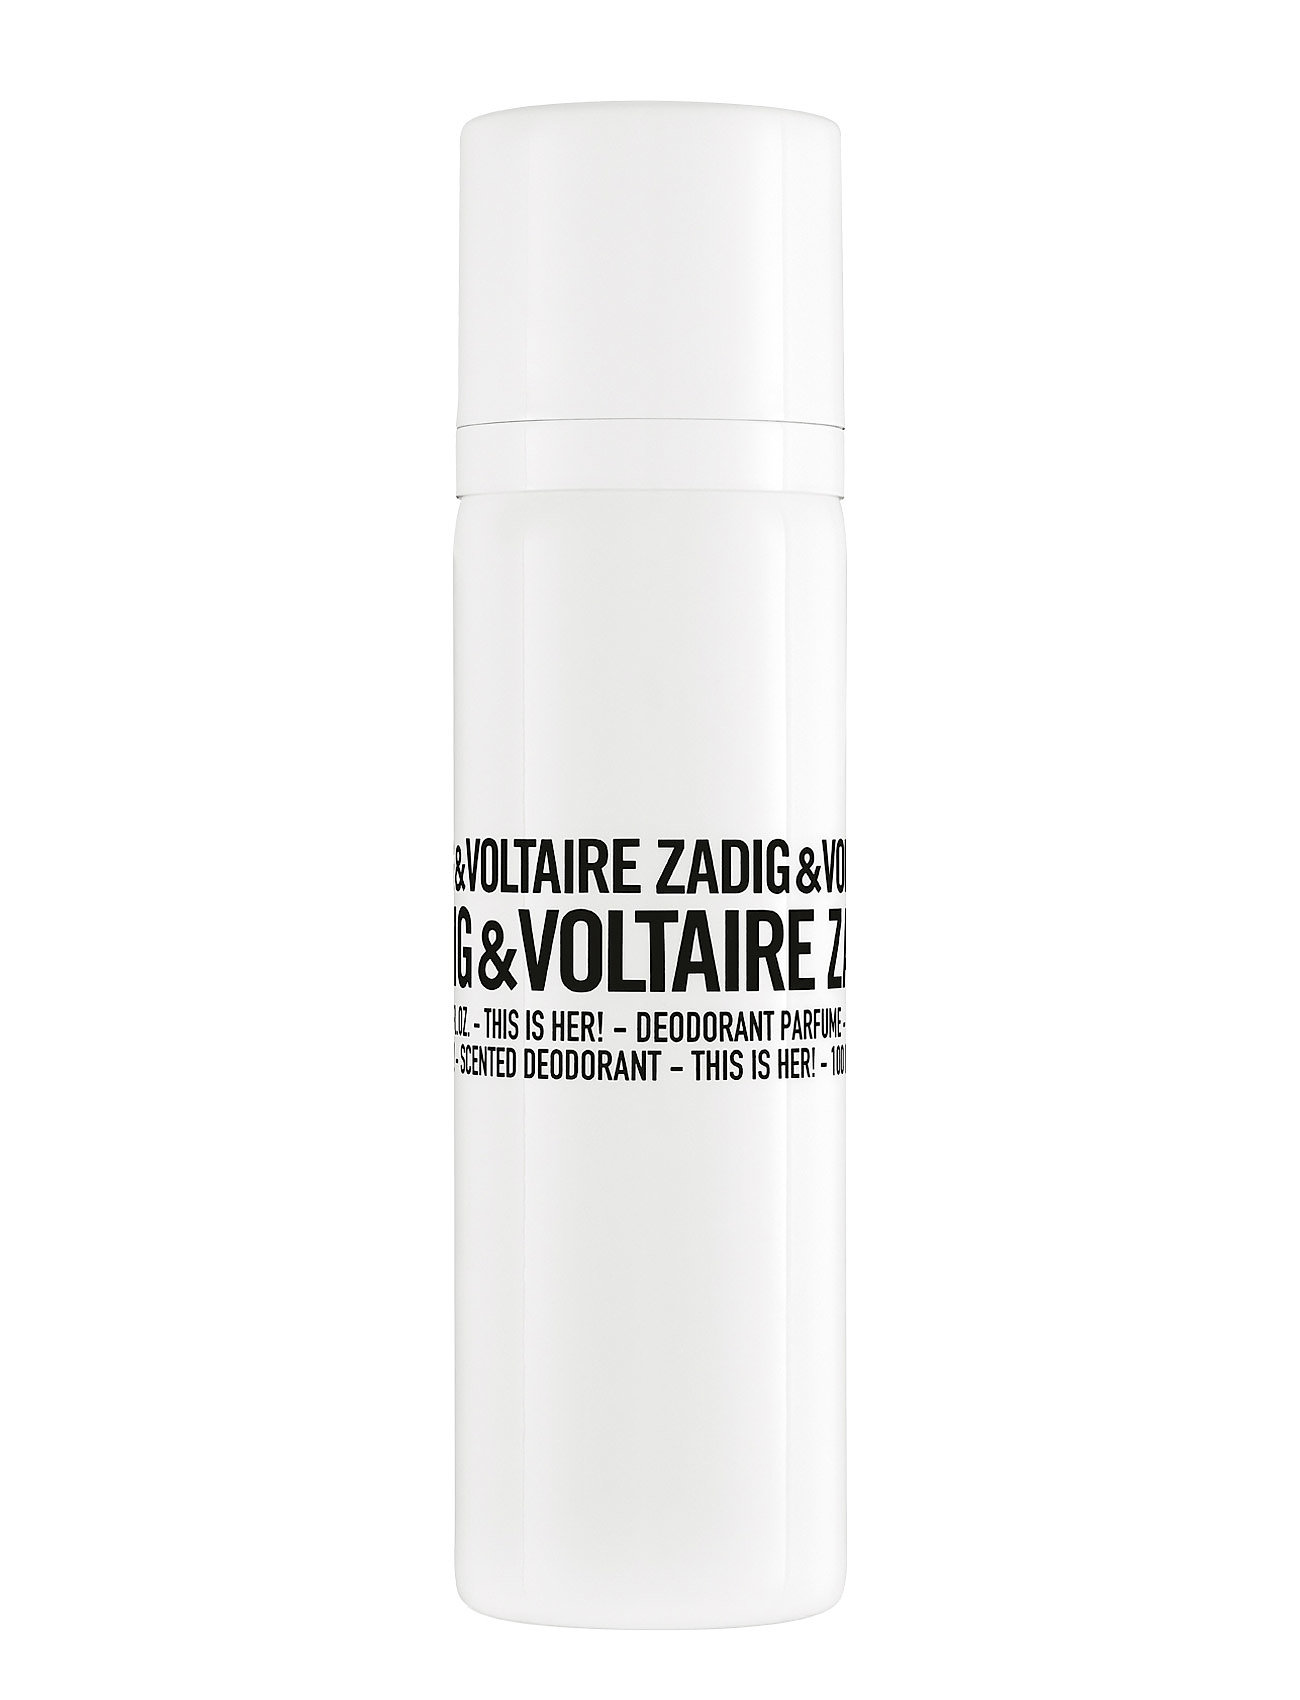 Zadig & Voltaire Fragrance THIS IS HER! DEODORANT SPRAY